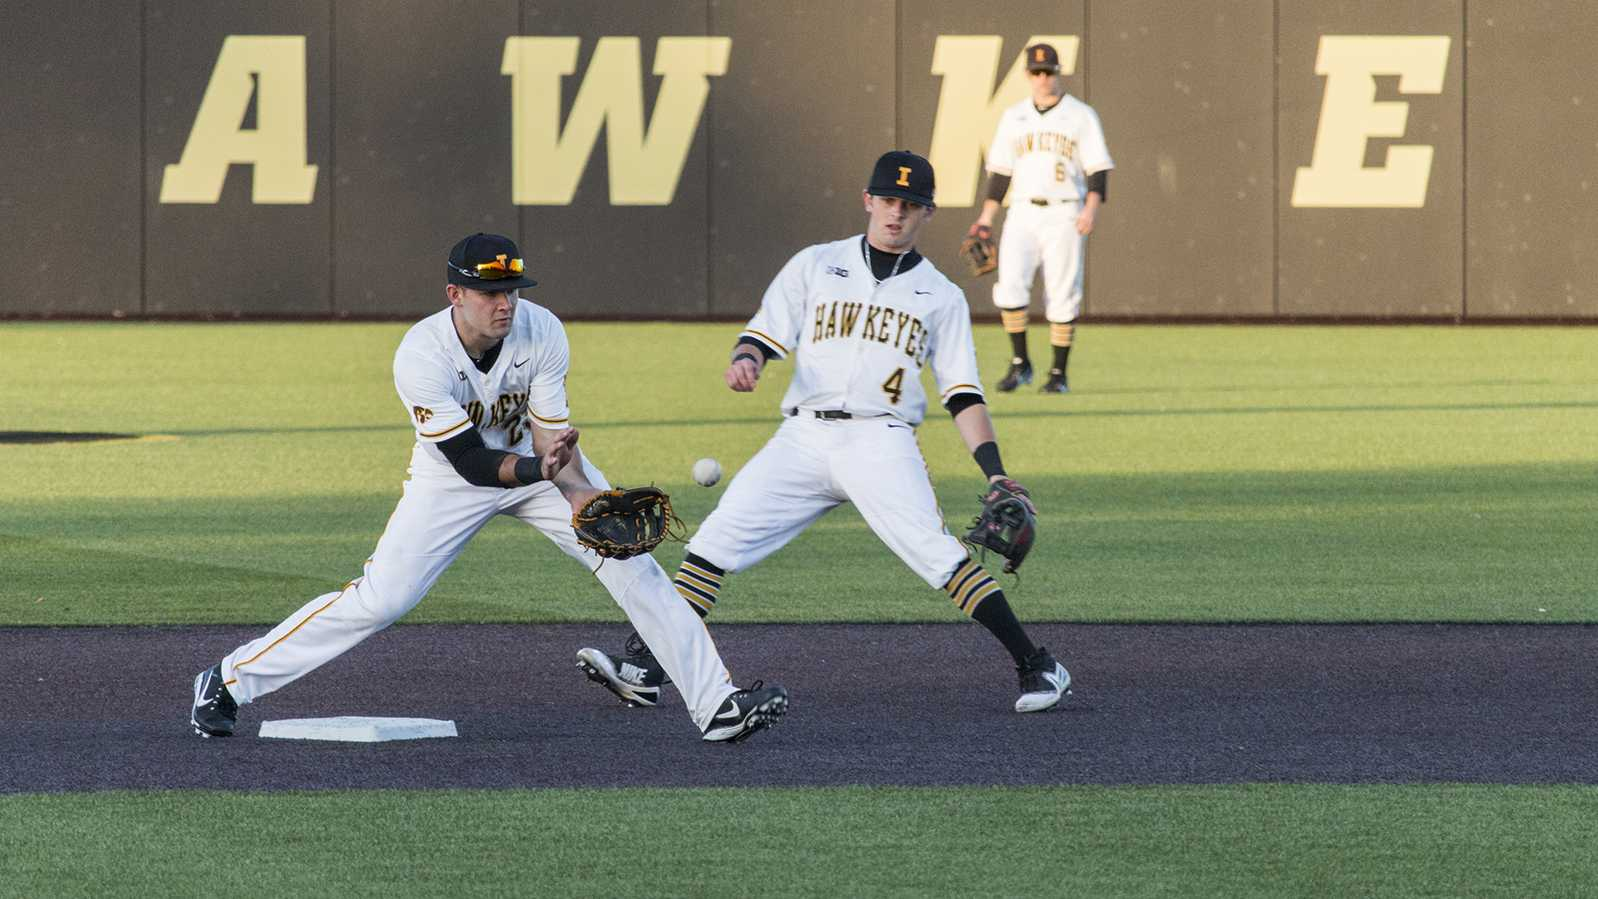 Iowa infielder Kyle Crowl catches the ball during men's baseball Iowa vs. Cornell at Duane Banks Field on Feb. 27, 2018. The Hawkeyes defeated Cornell 15-1. (Katina Zentz/The Daily Iowan)